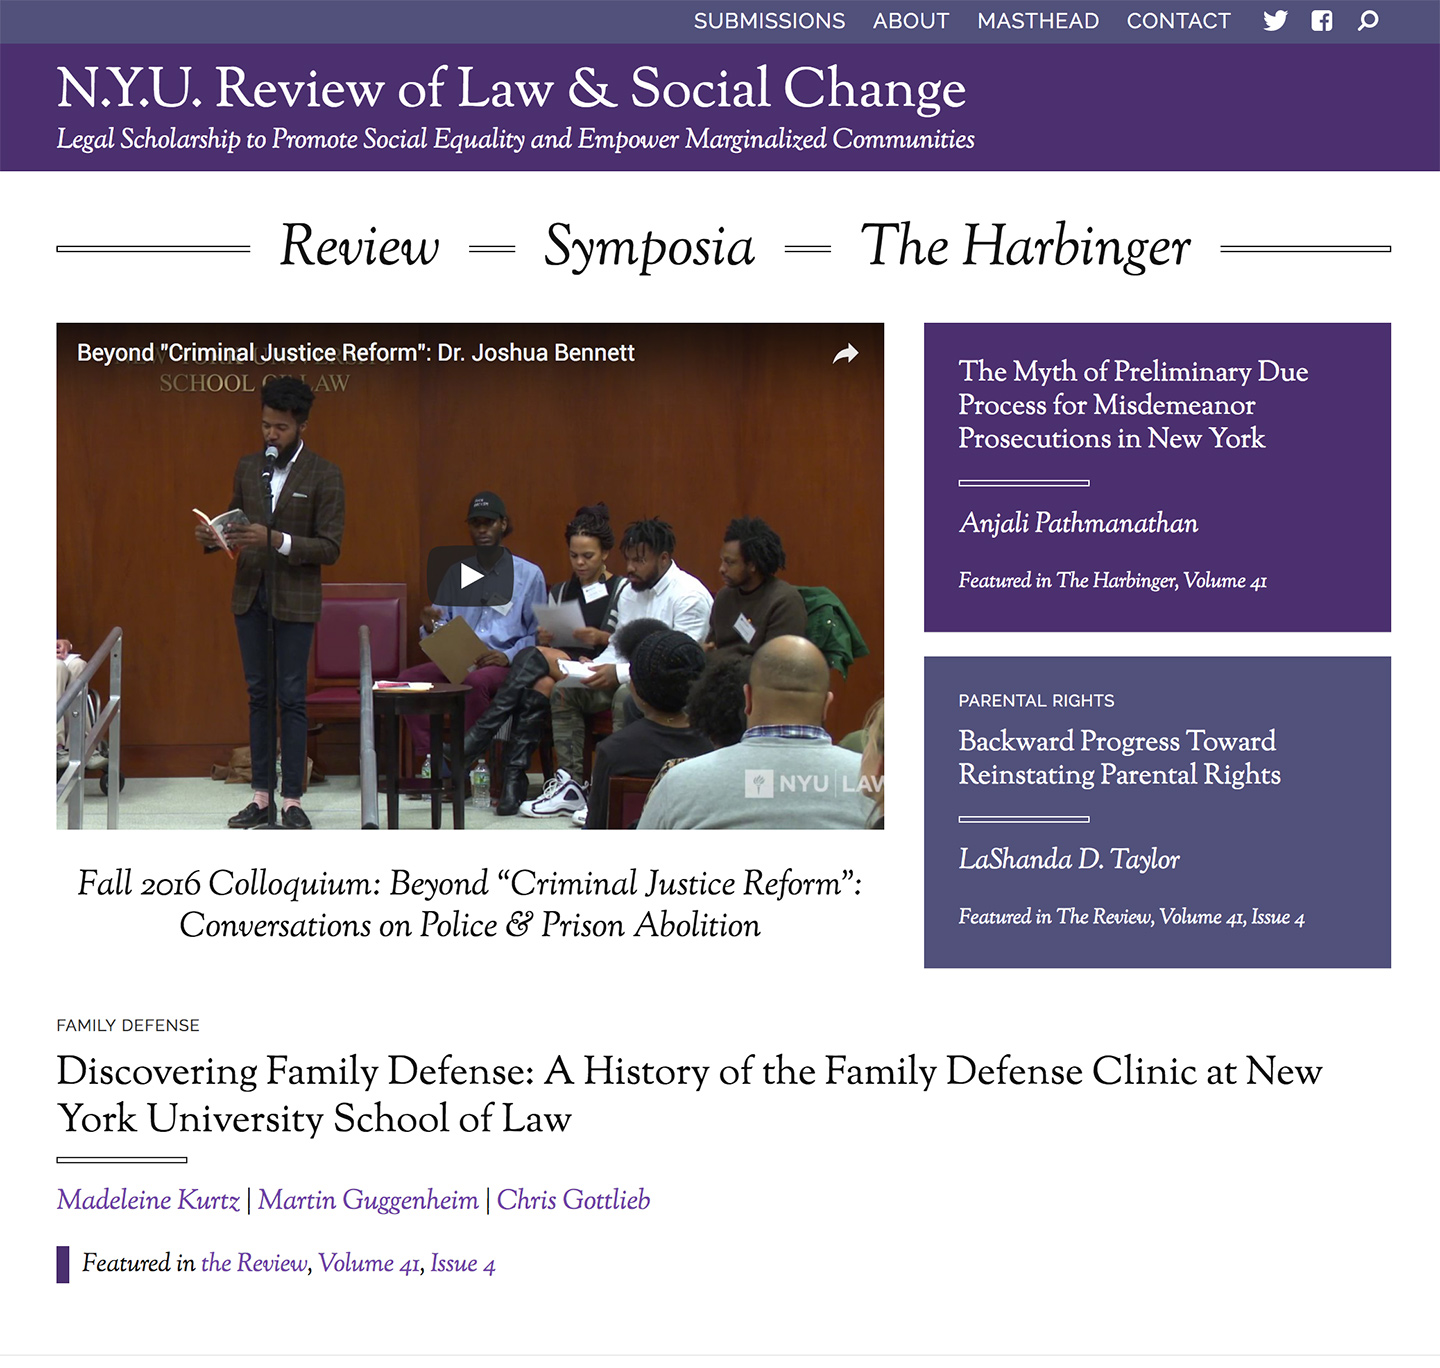 NYU: Review of Law and Social Change: RLSC Homepage